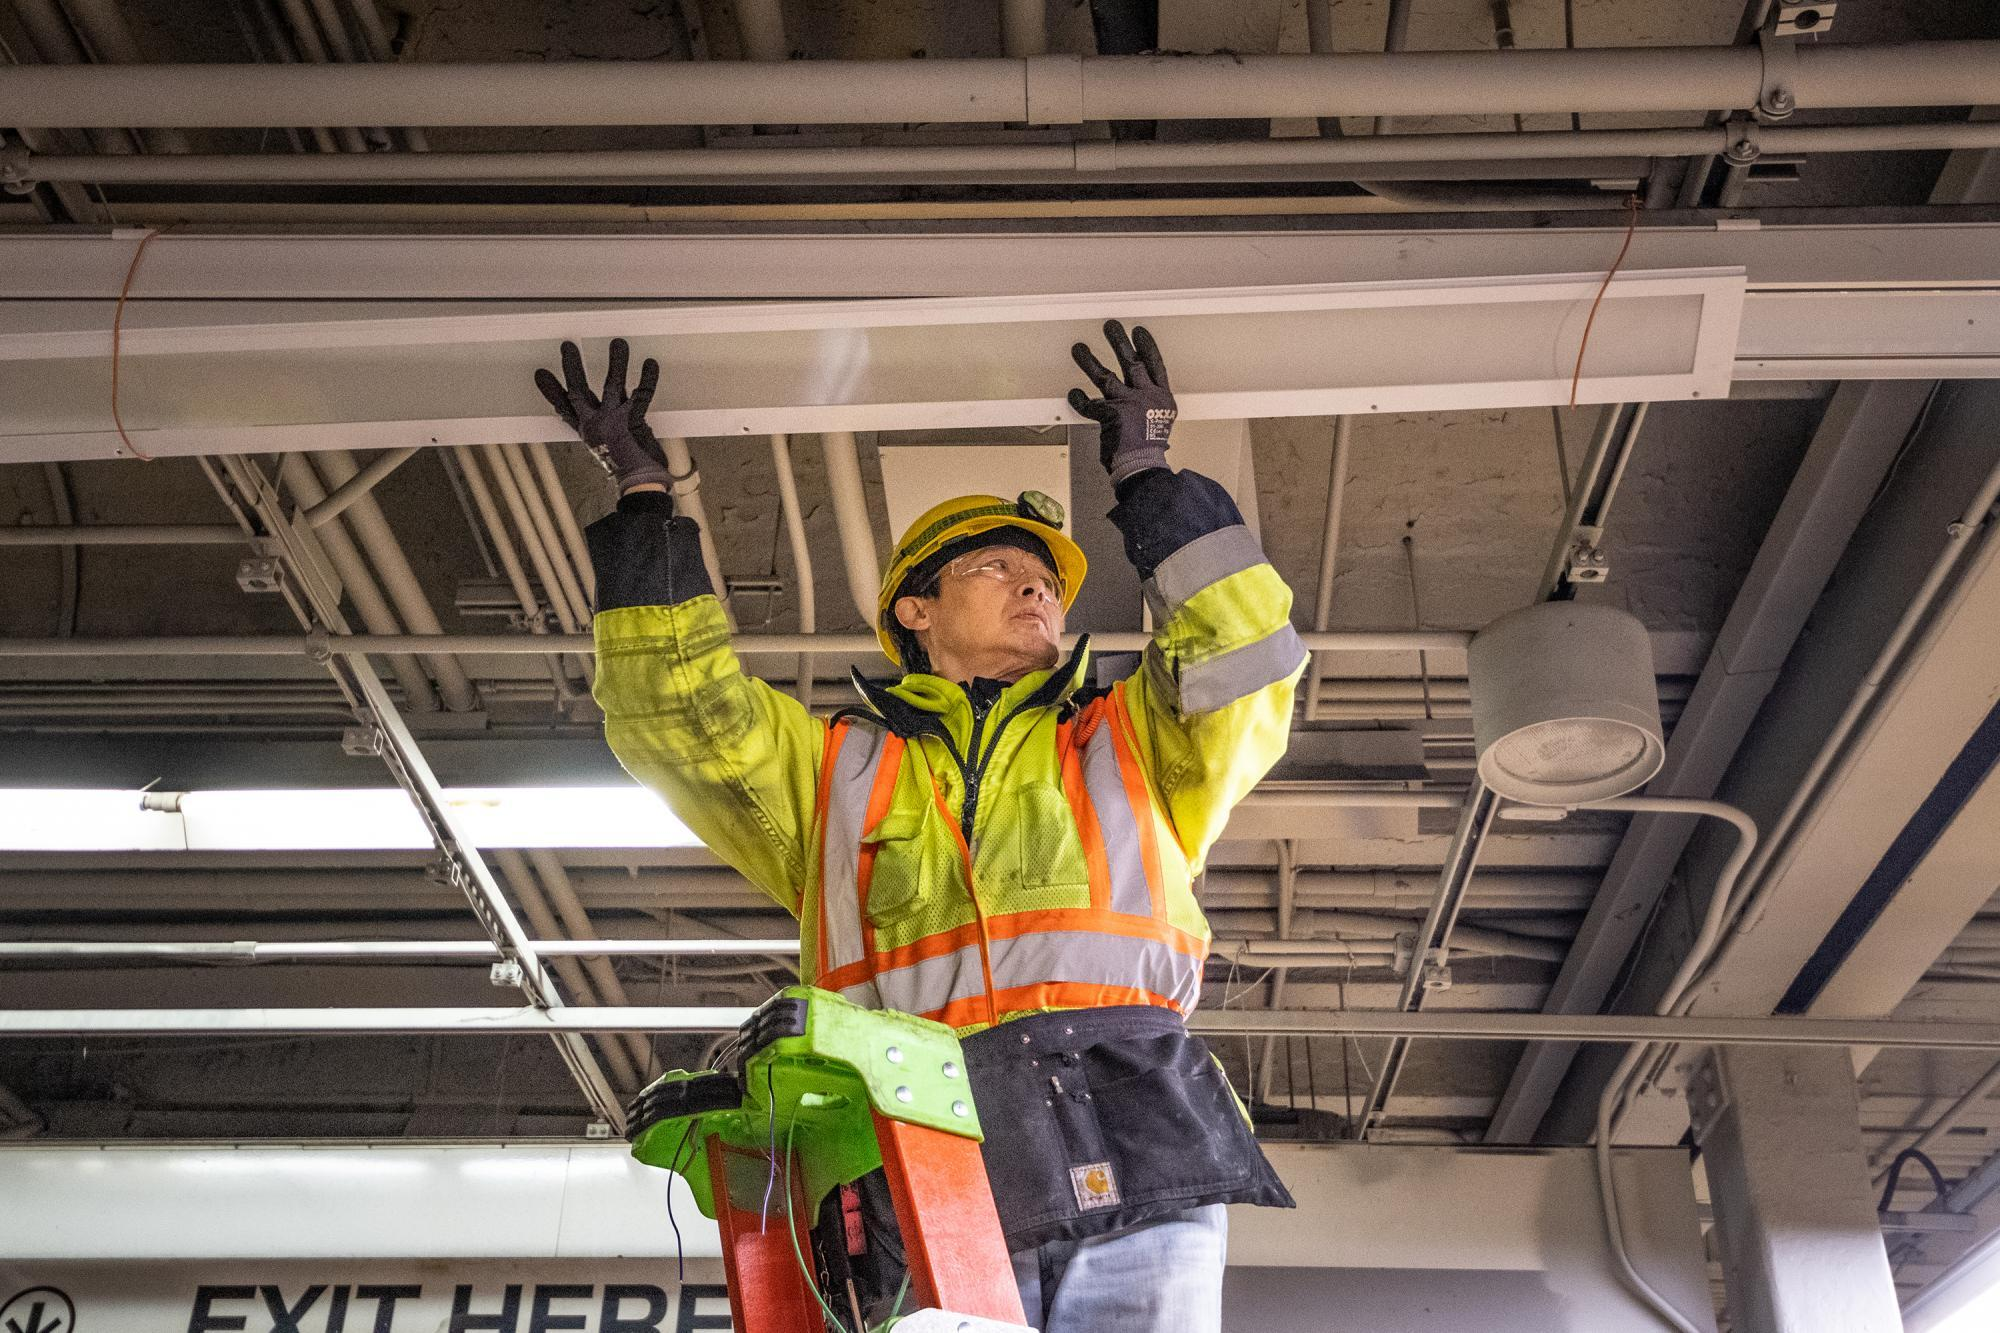 A crewman installs new lights above the Green Line at Park Street